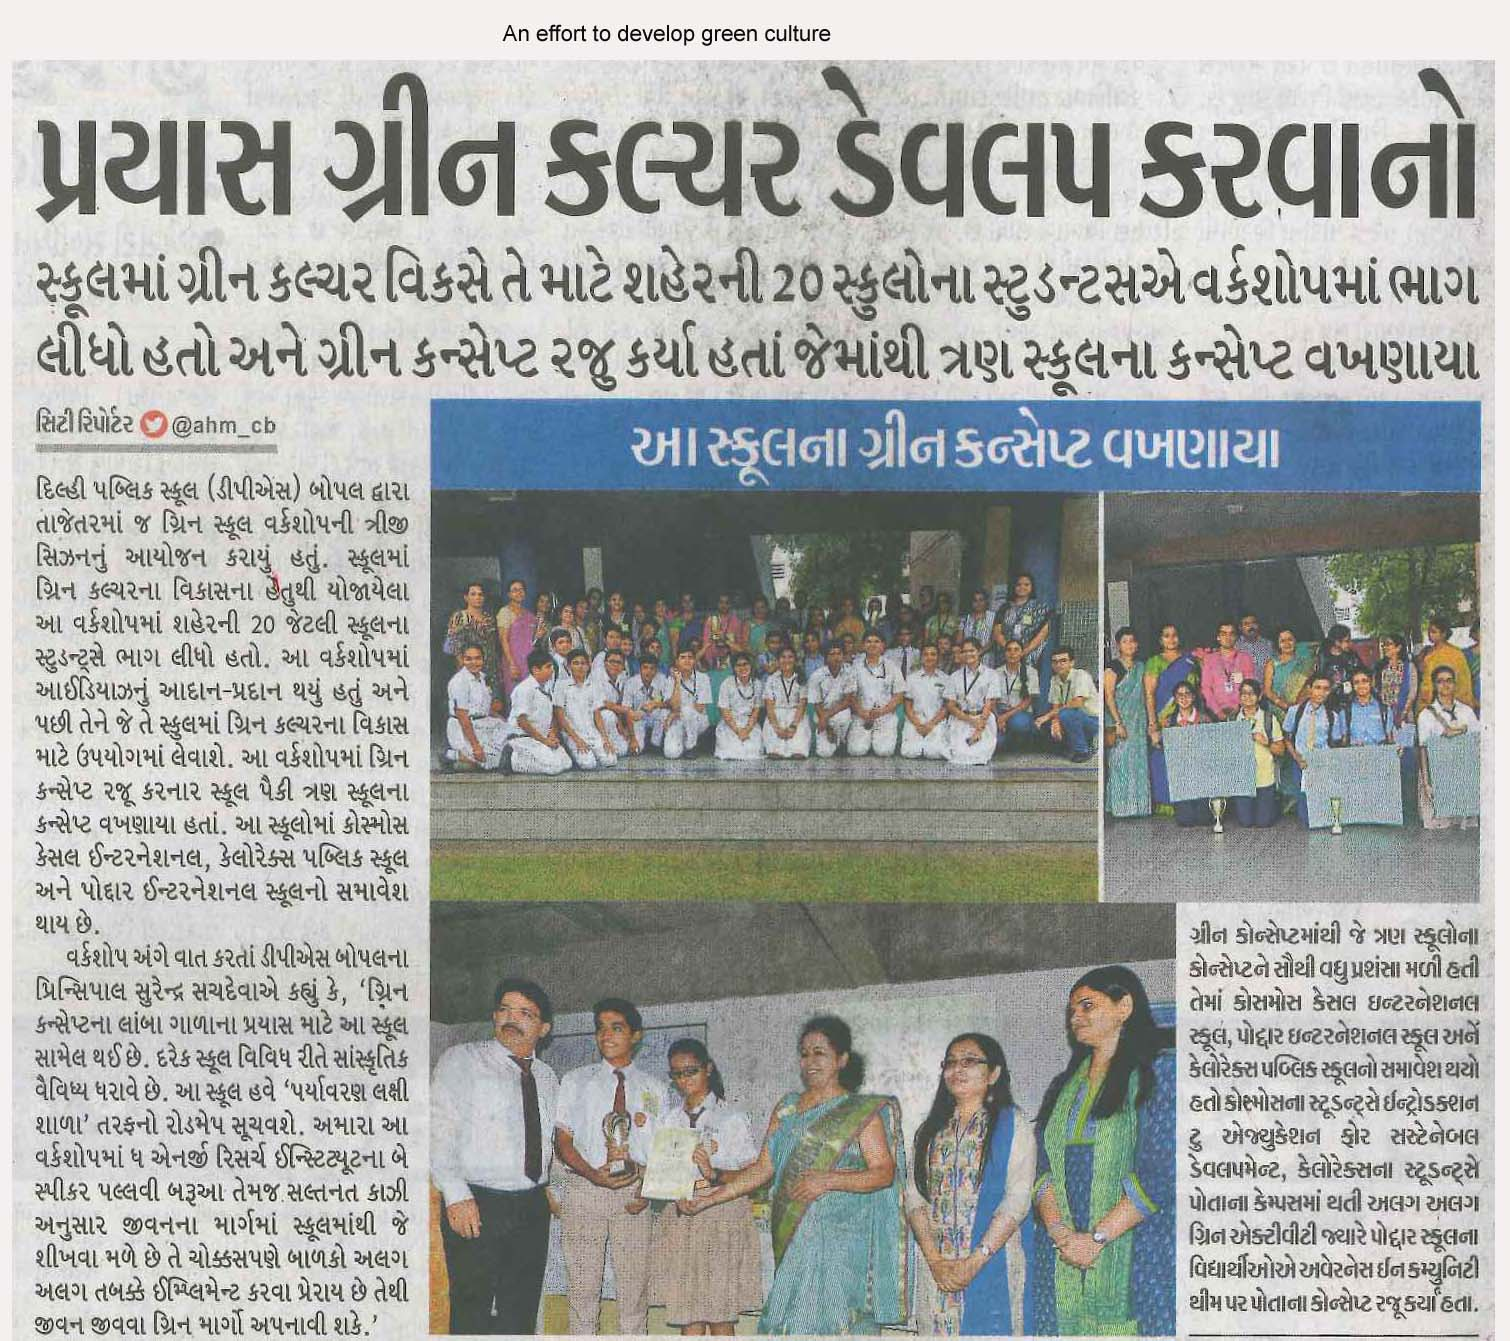 Description: http://dpsbopal-ahd.edu.in/Uploads/Divya%20Bhaskar-City%20Bhaskar%20%28Ahd%29_DPS%20Bopal%20%28Green%20School%20Workshop%29_29.08.16_Pg%2009_201608290106099024.jpg